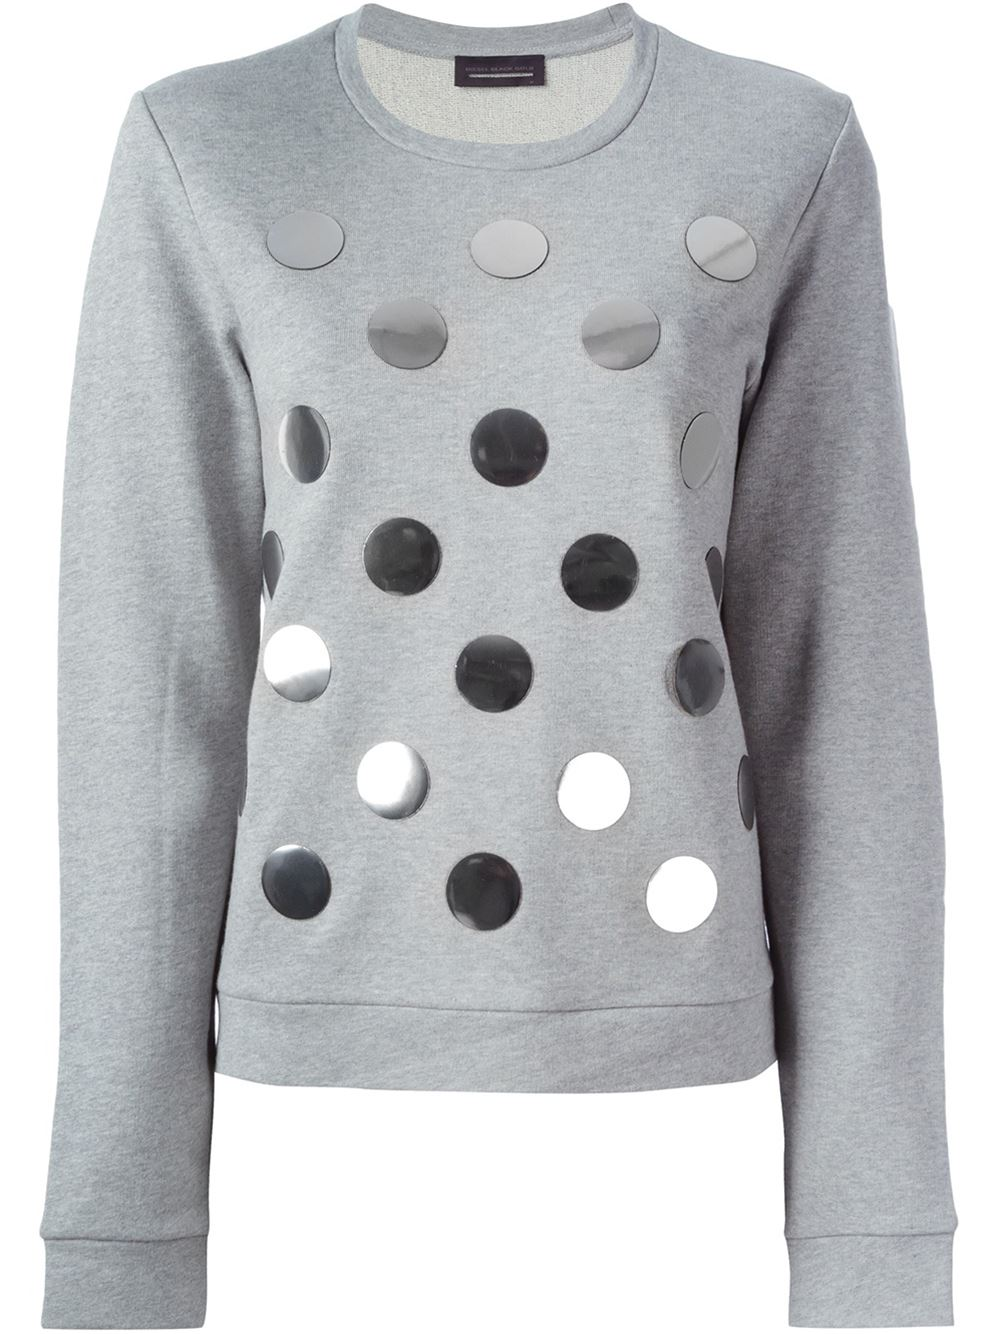 Find great deals on eBay for polka dot sweatshirt. Shop with confidence.